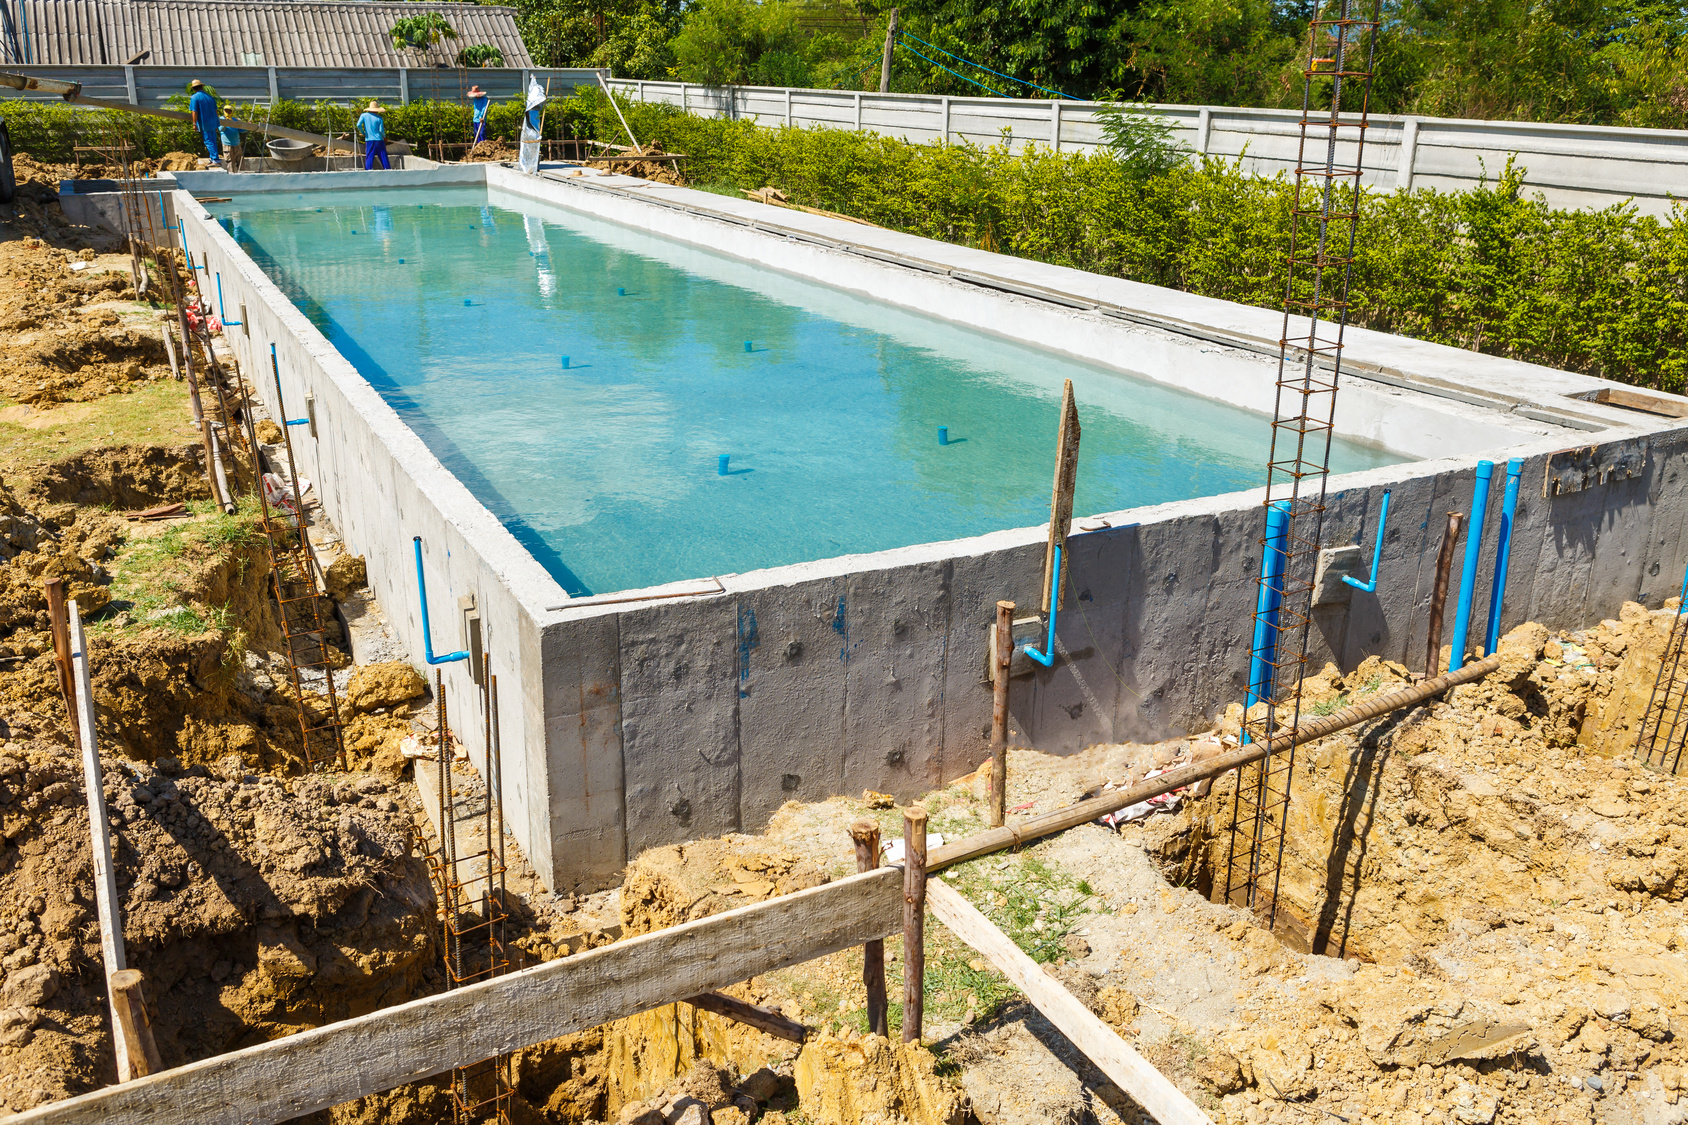 Construire une piscine b ton traditionnelle en kit for Piscine dure hors sol